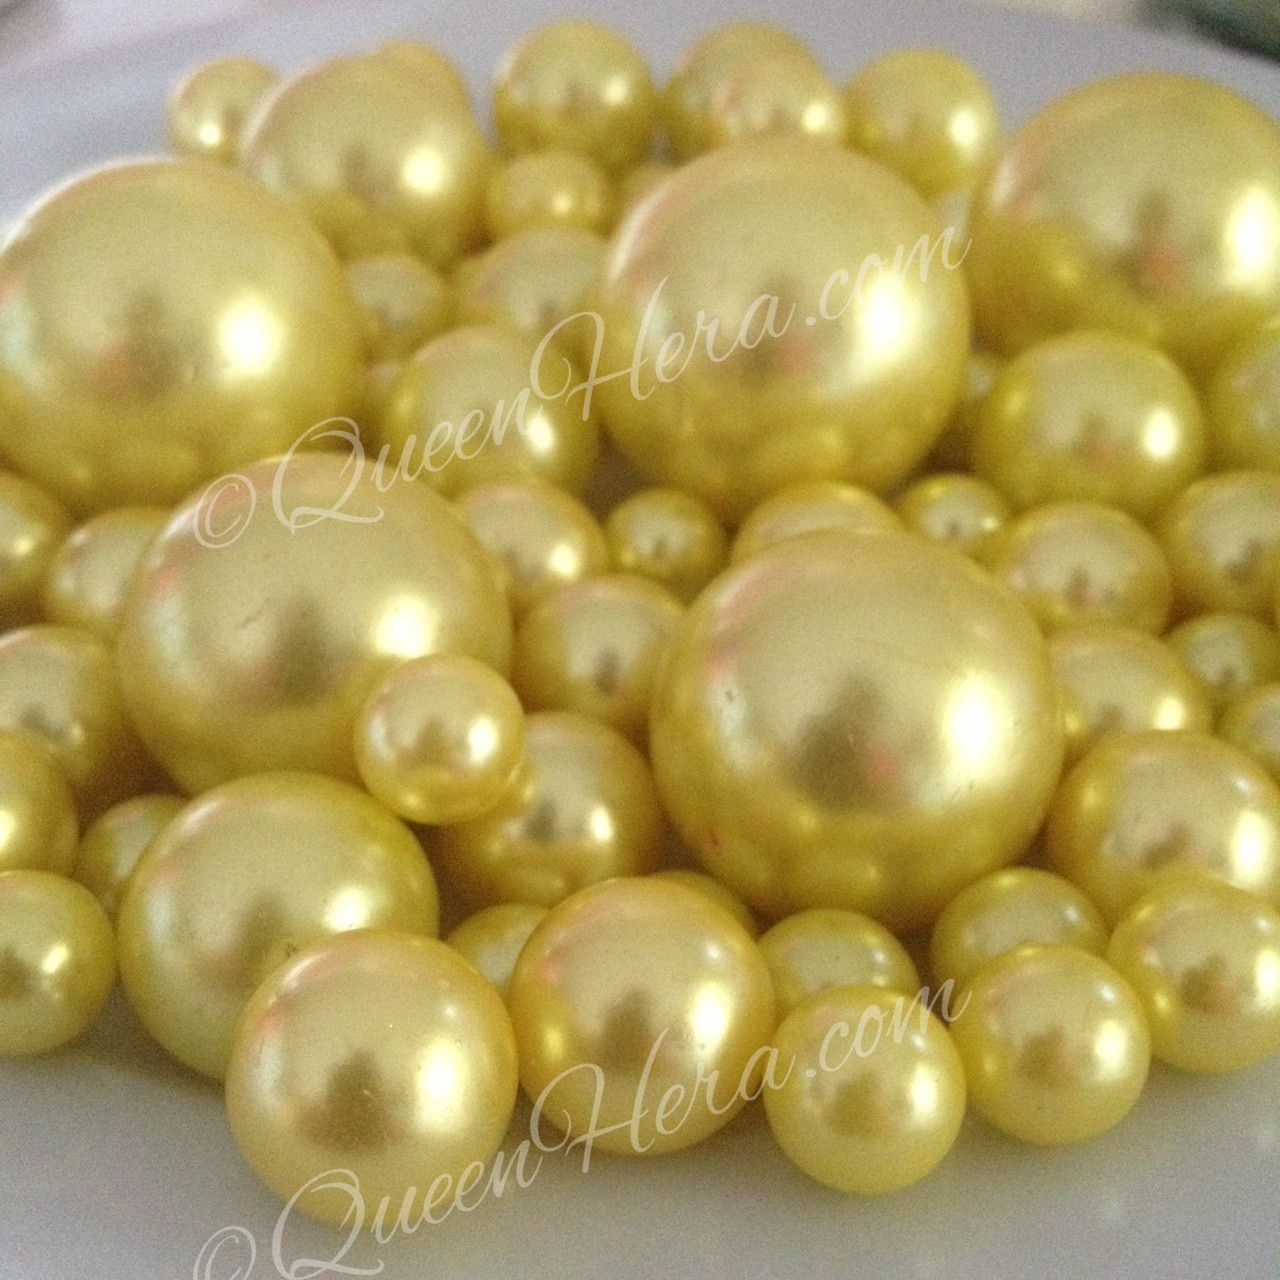 white and from pearls on beads stock picture photo fabric yellow